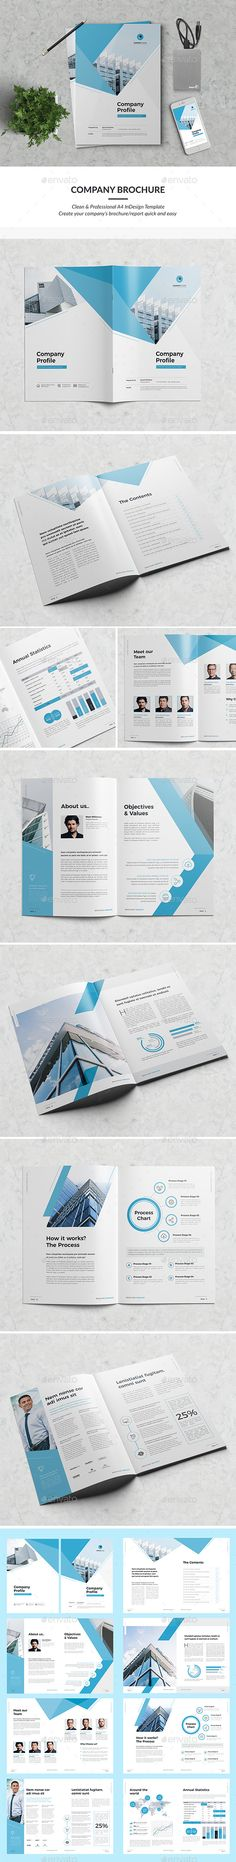 Minimal #Company Profile 16 Pages - Corporate #Brochures Download here:  https://graphicriver.net/item/minimal-company-profile-16-pages/20349557?ref=alena994